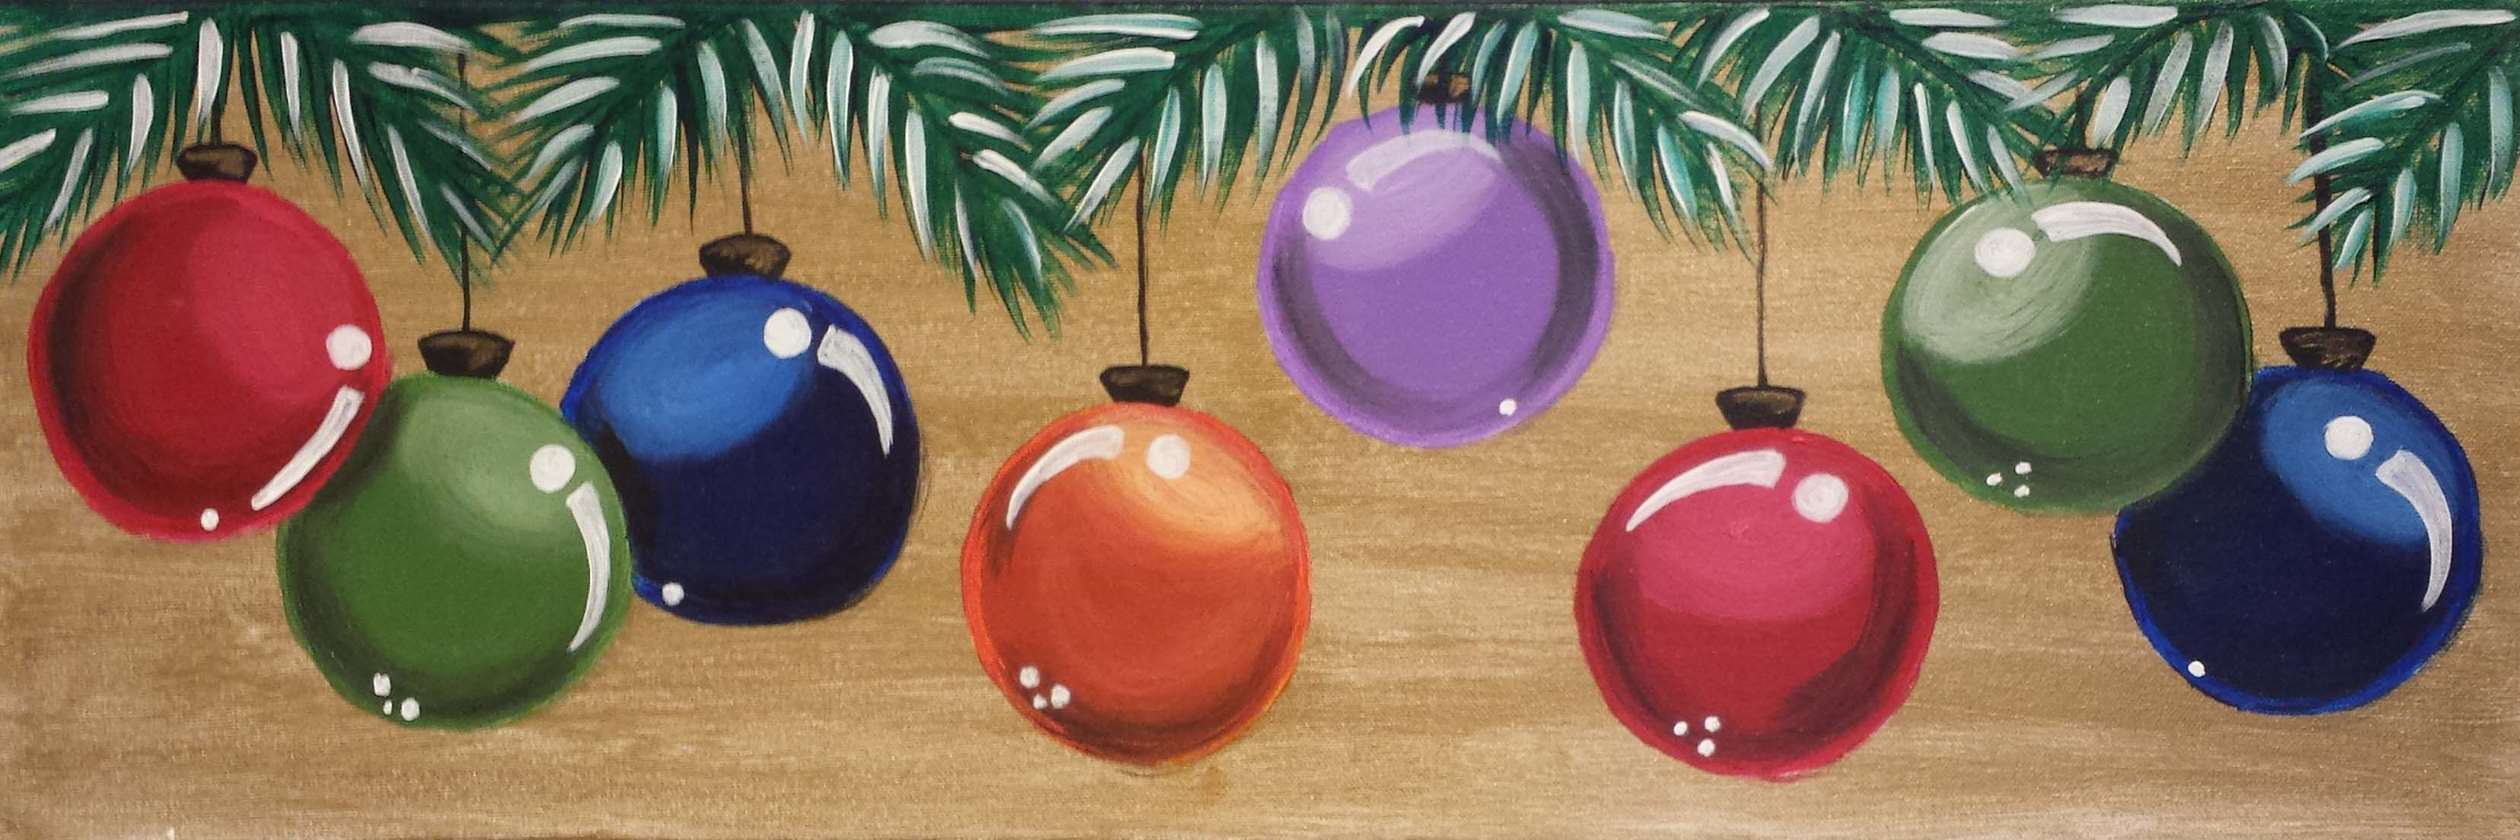 Holiday Ornaments in a Row